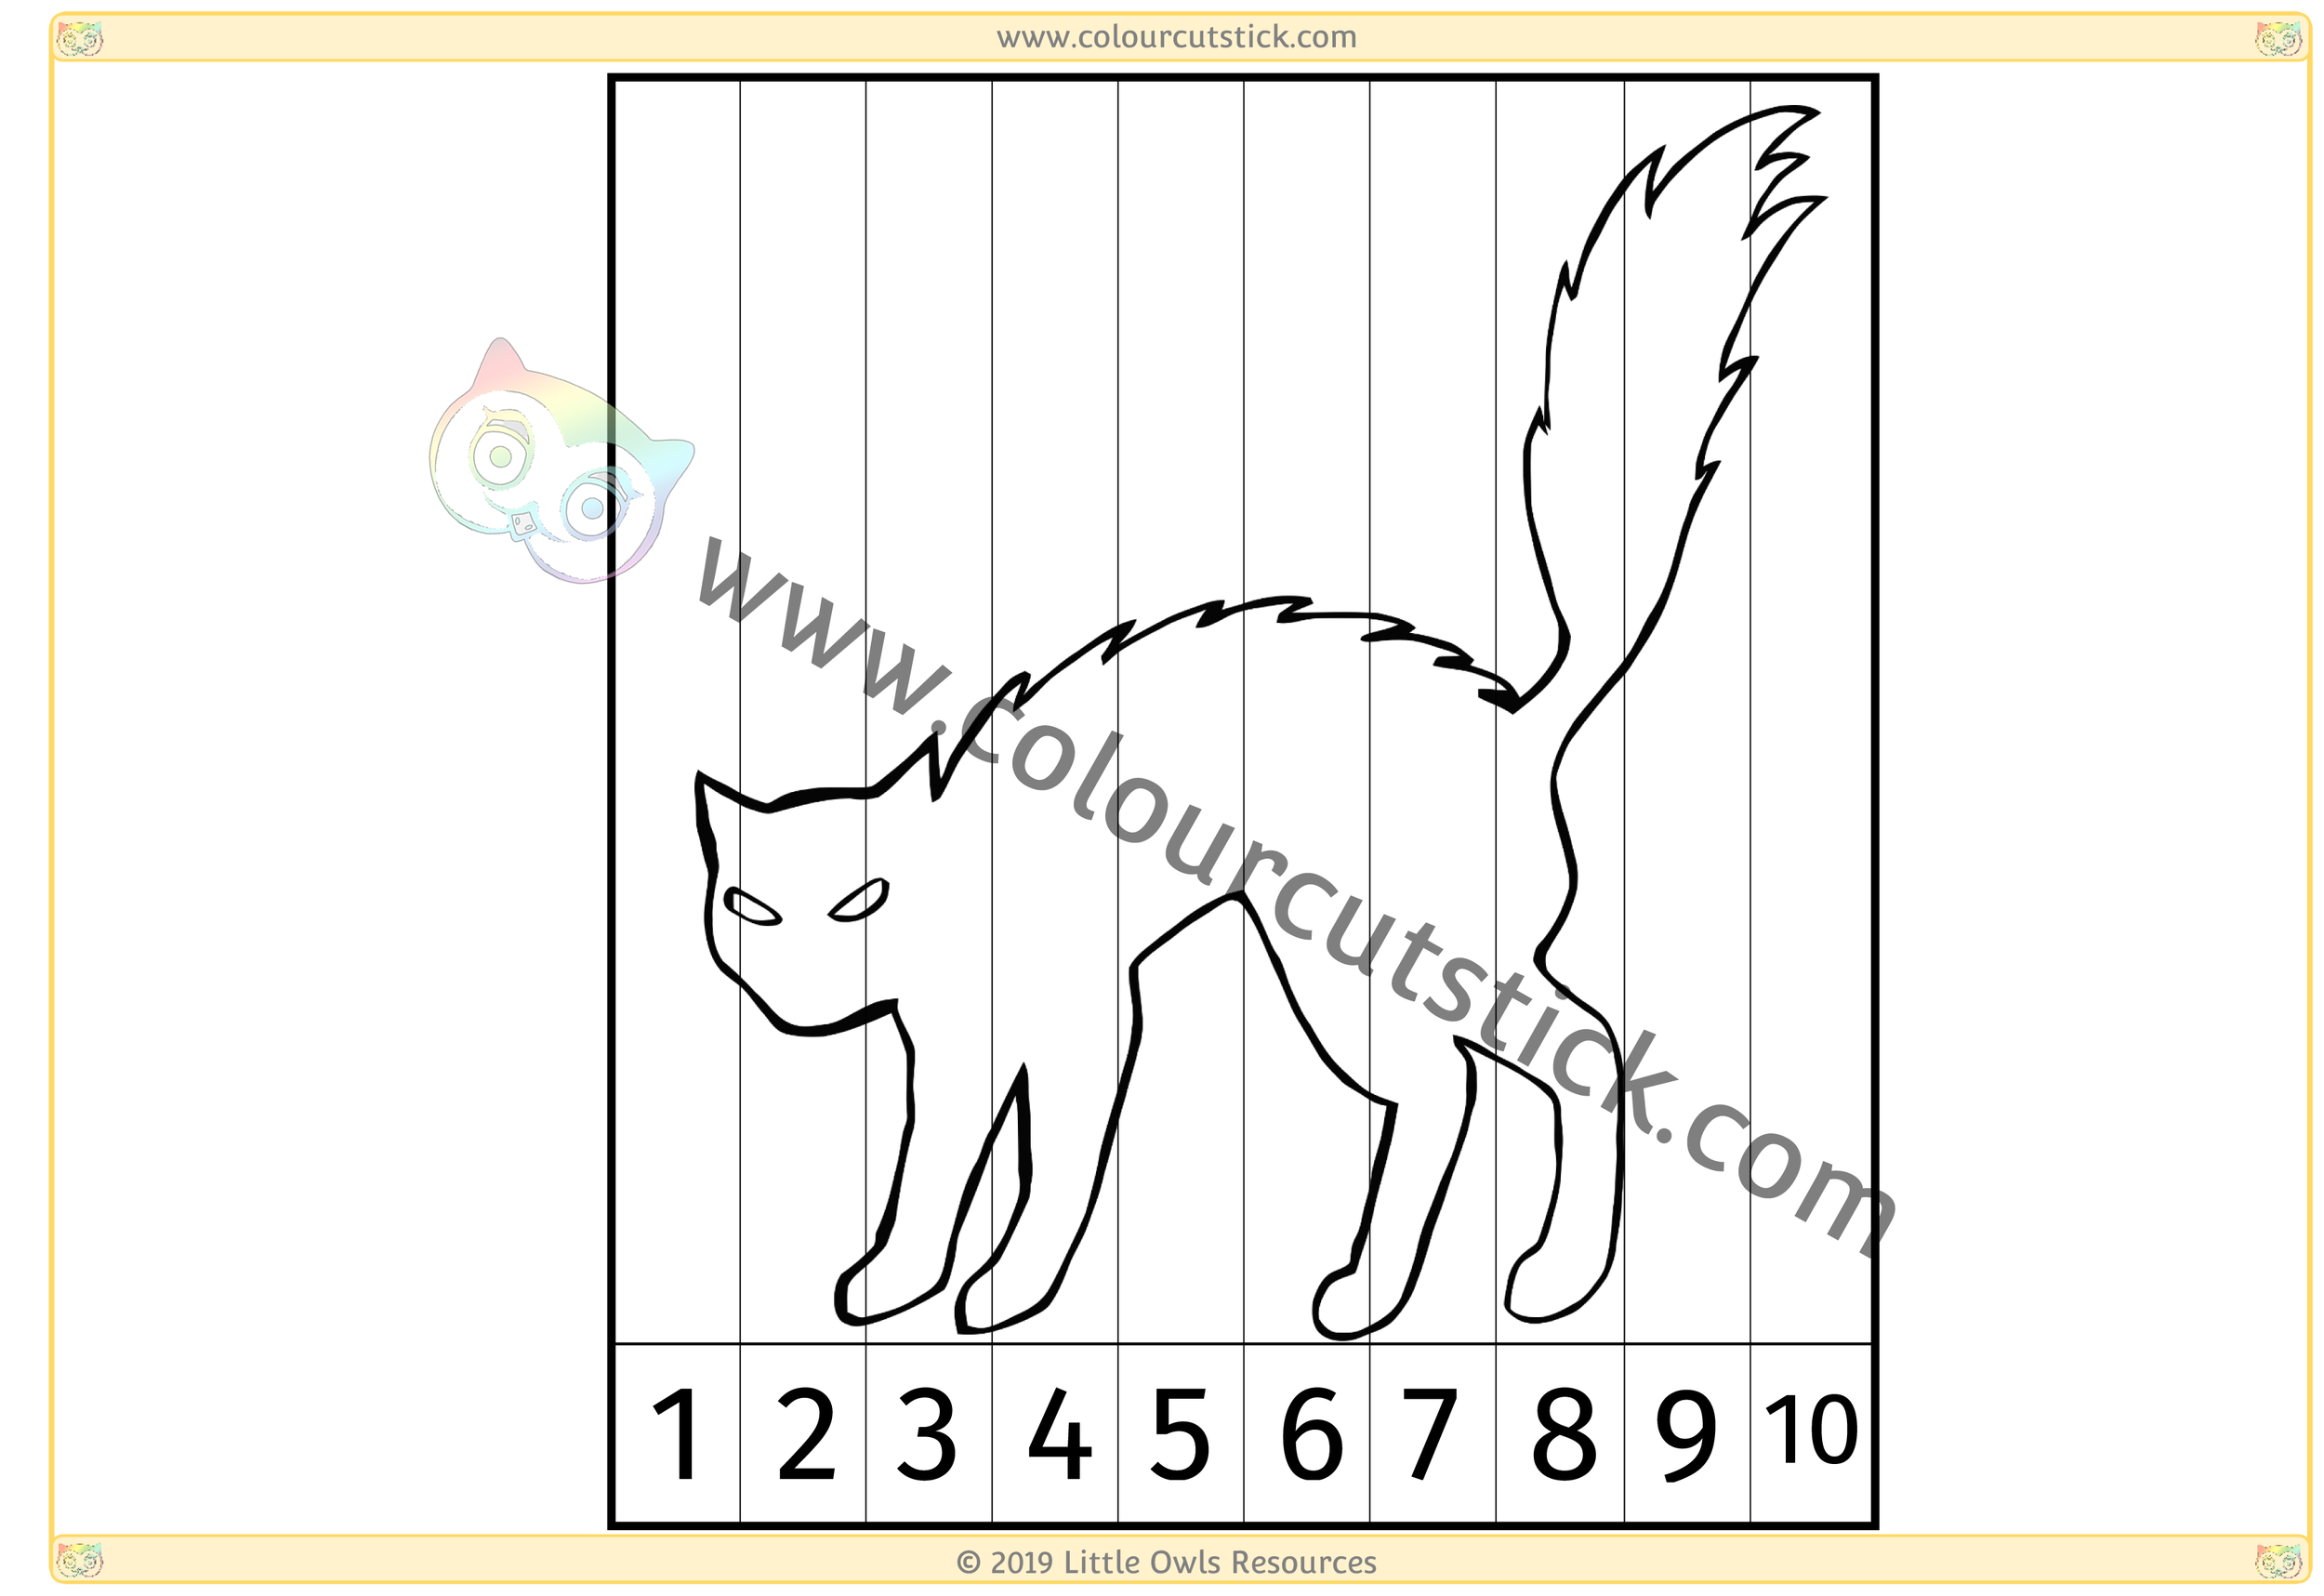 Spooky Cat Number Slice Puzzle 1-10 -